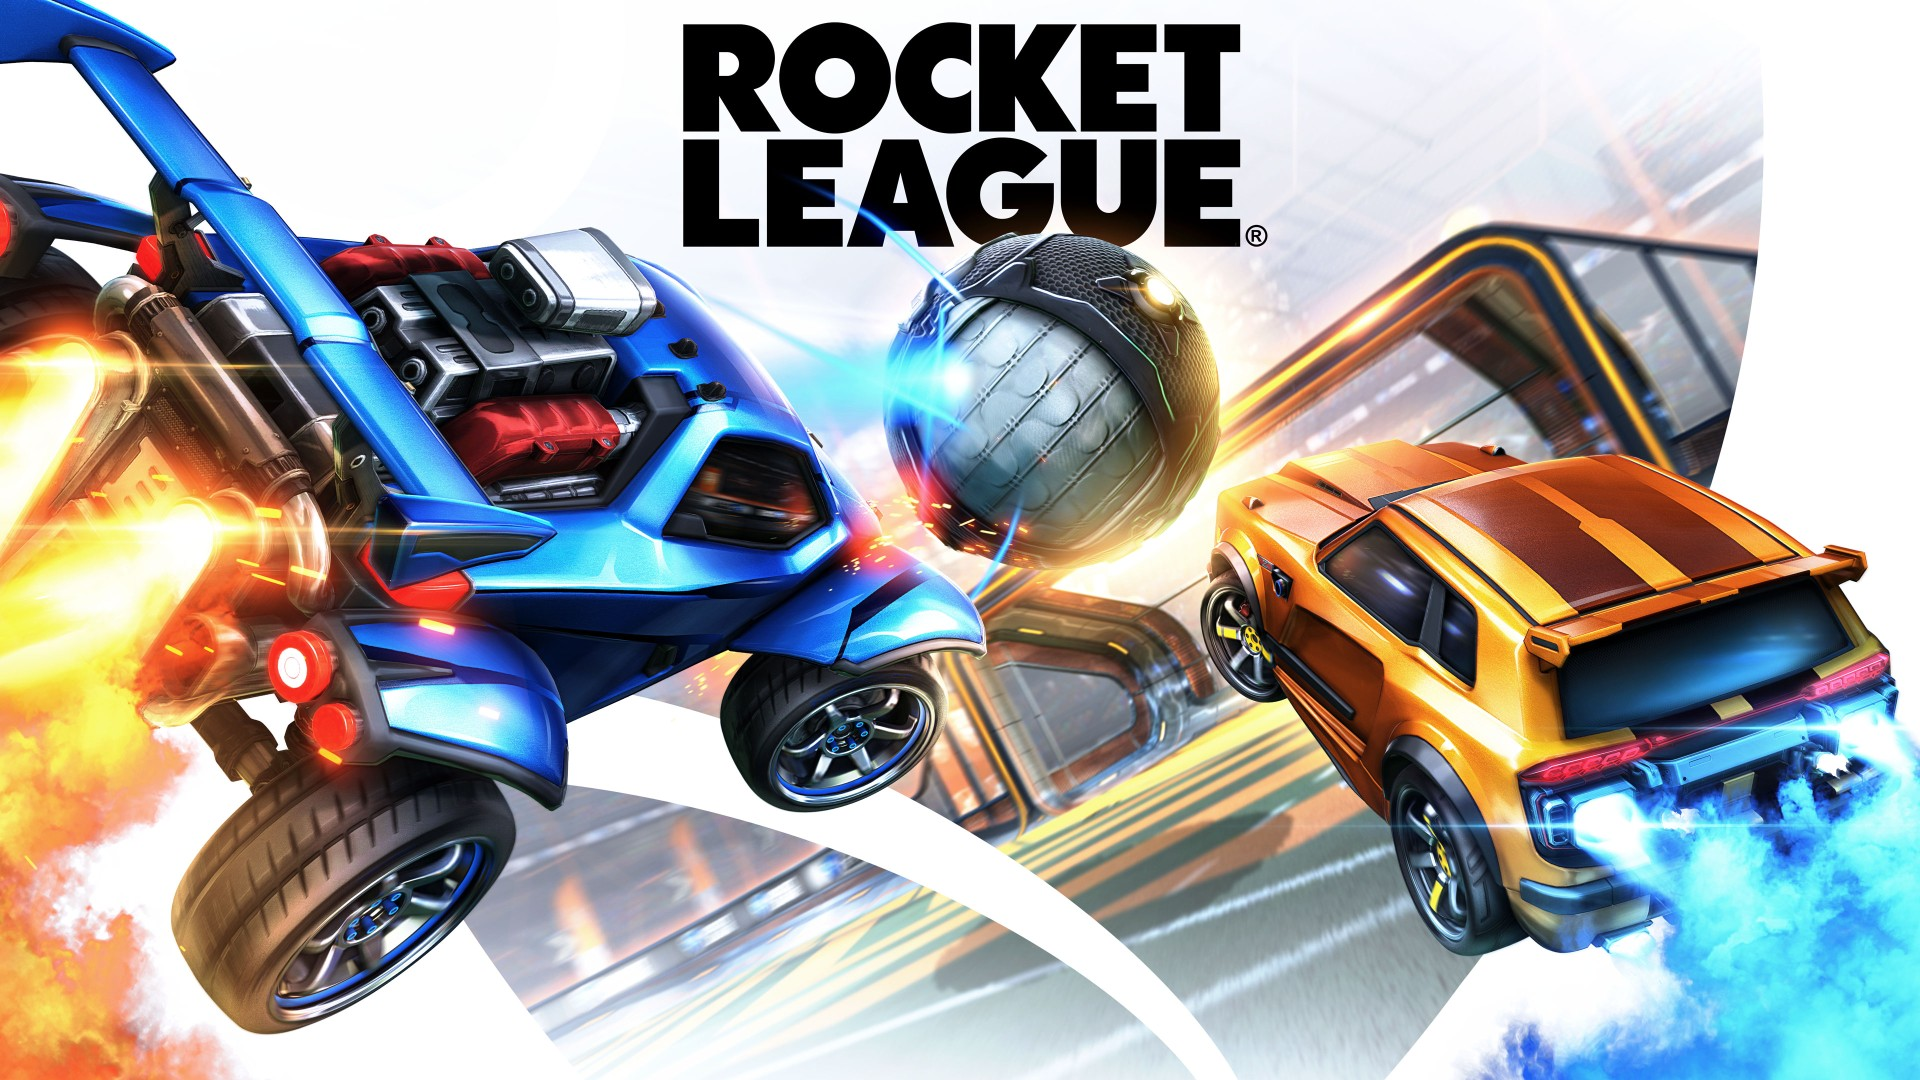 Video For Rocket League is Going Free to Play September 23 on Xbox One